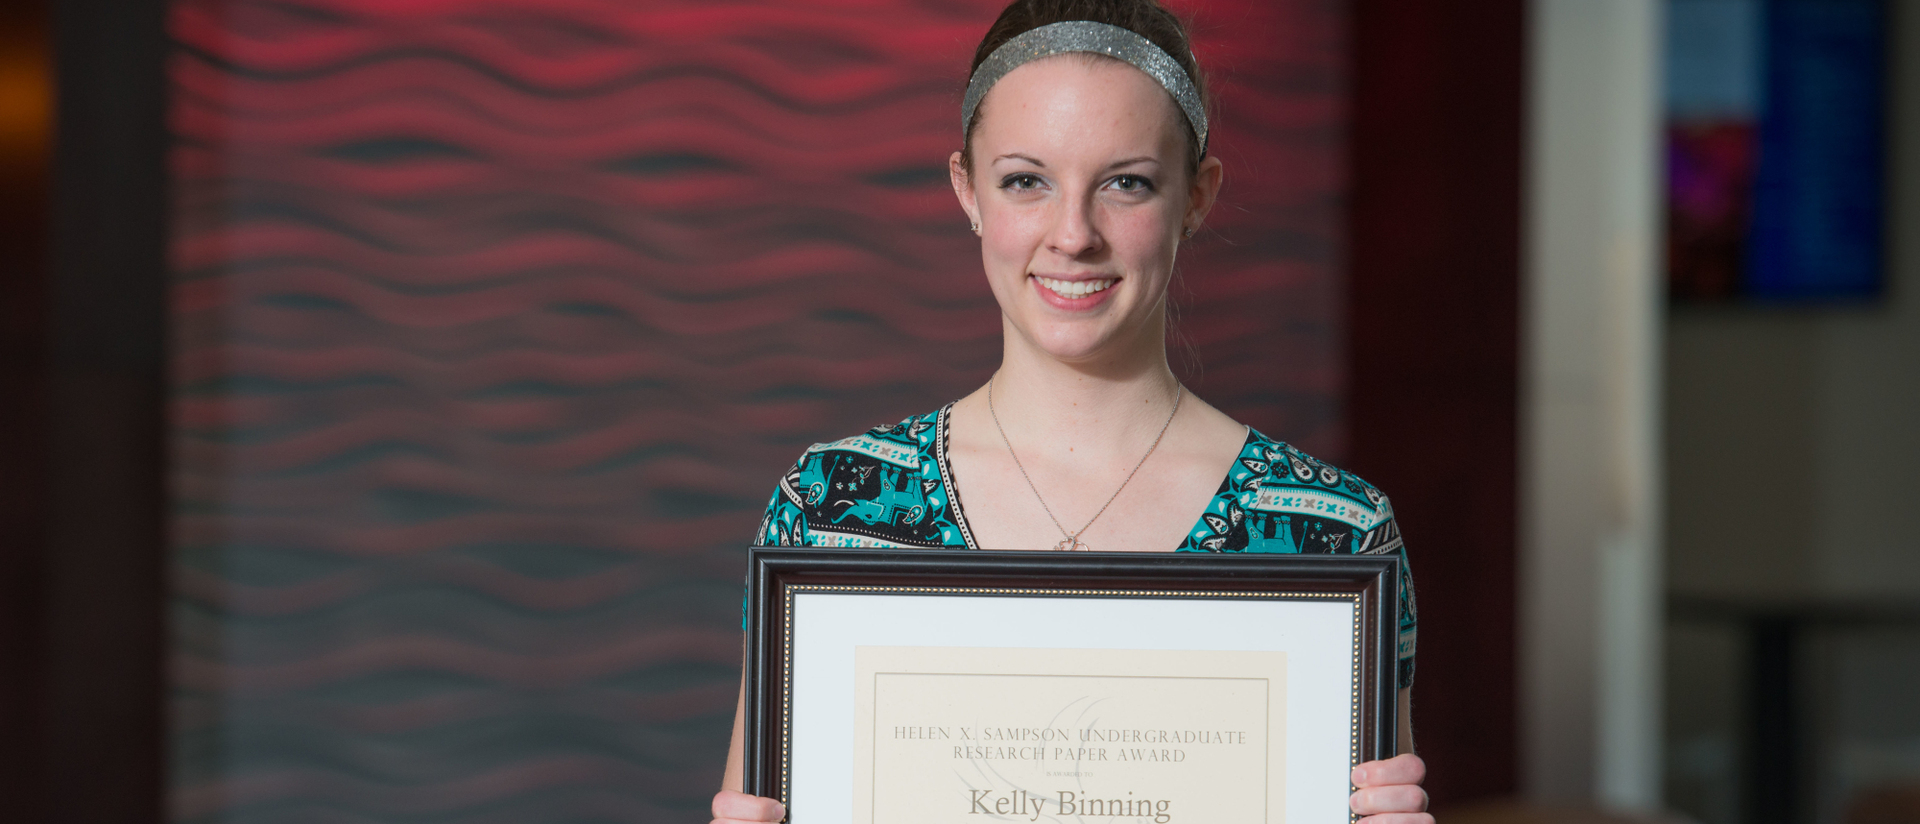 Student Kelly Binning with research award